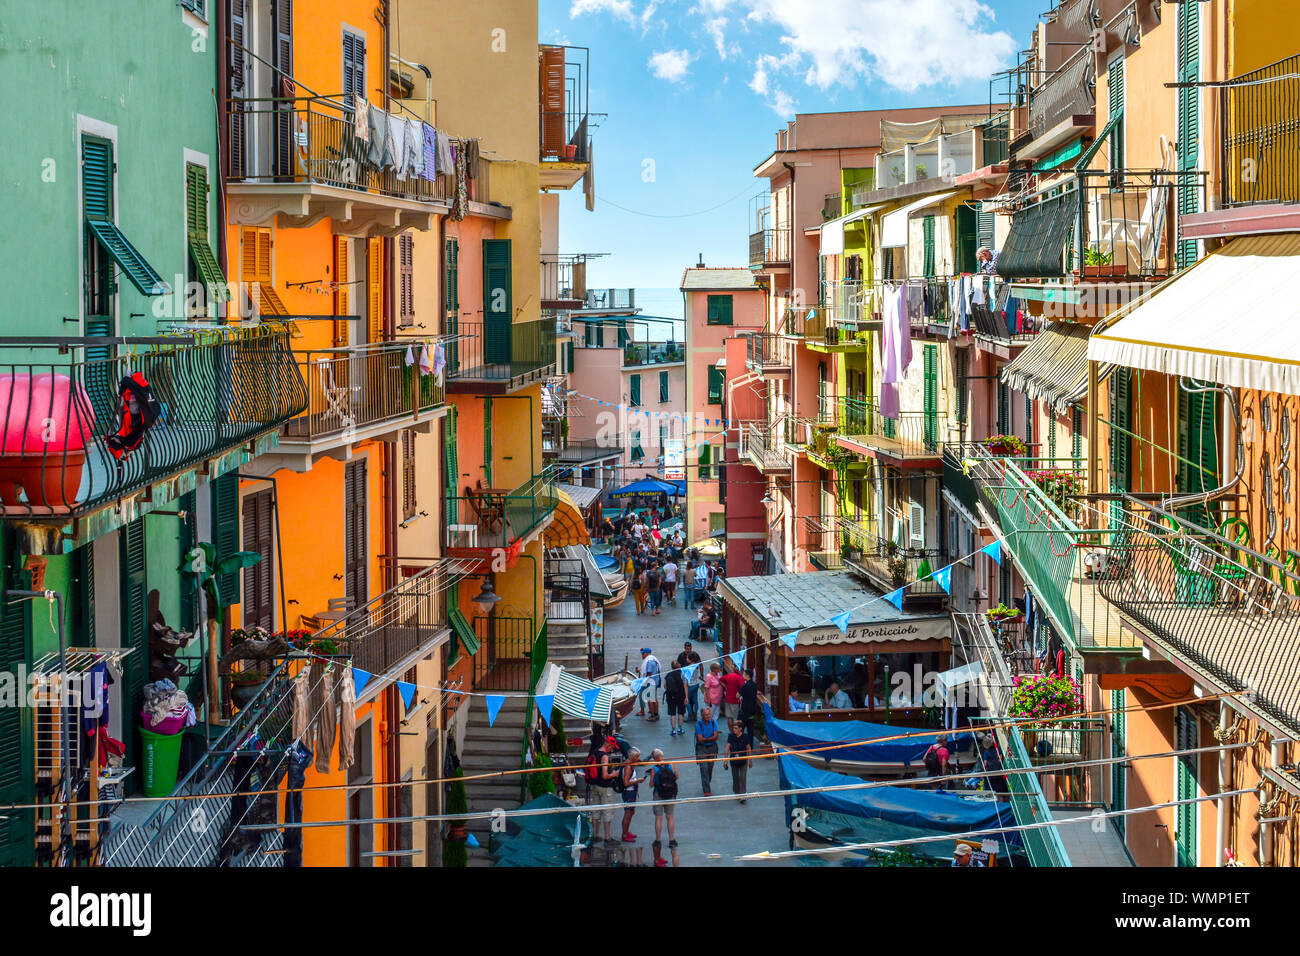 The colorful hillside village of Riomaggiore Italy, part of the Cinque Terre coast of the Ligurian Sea, with tourists enjoying it's busy main street Stock Photo